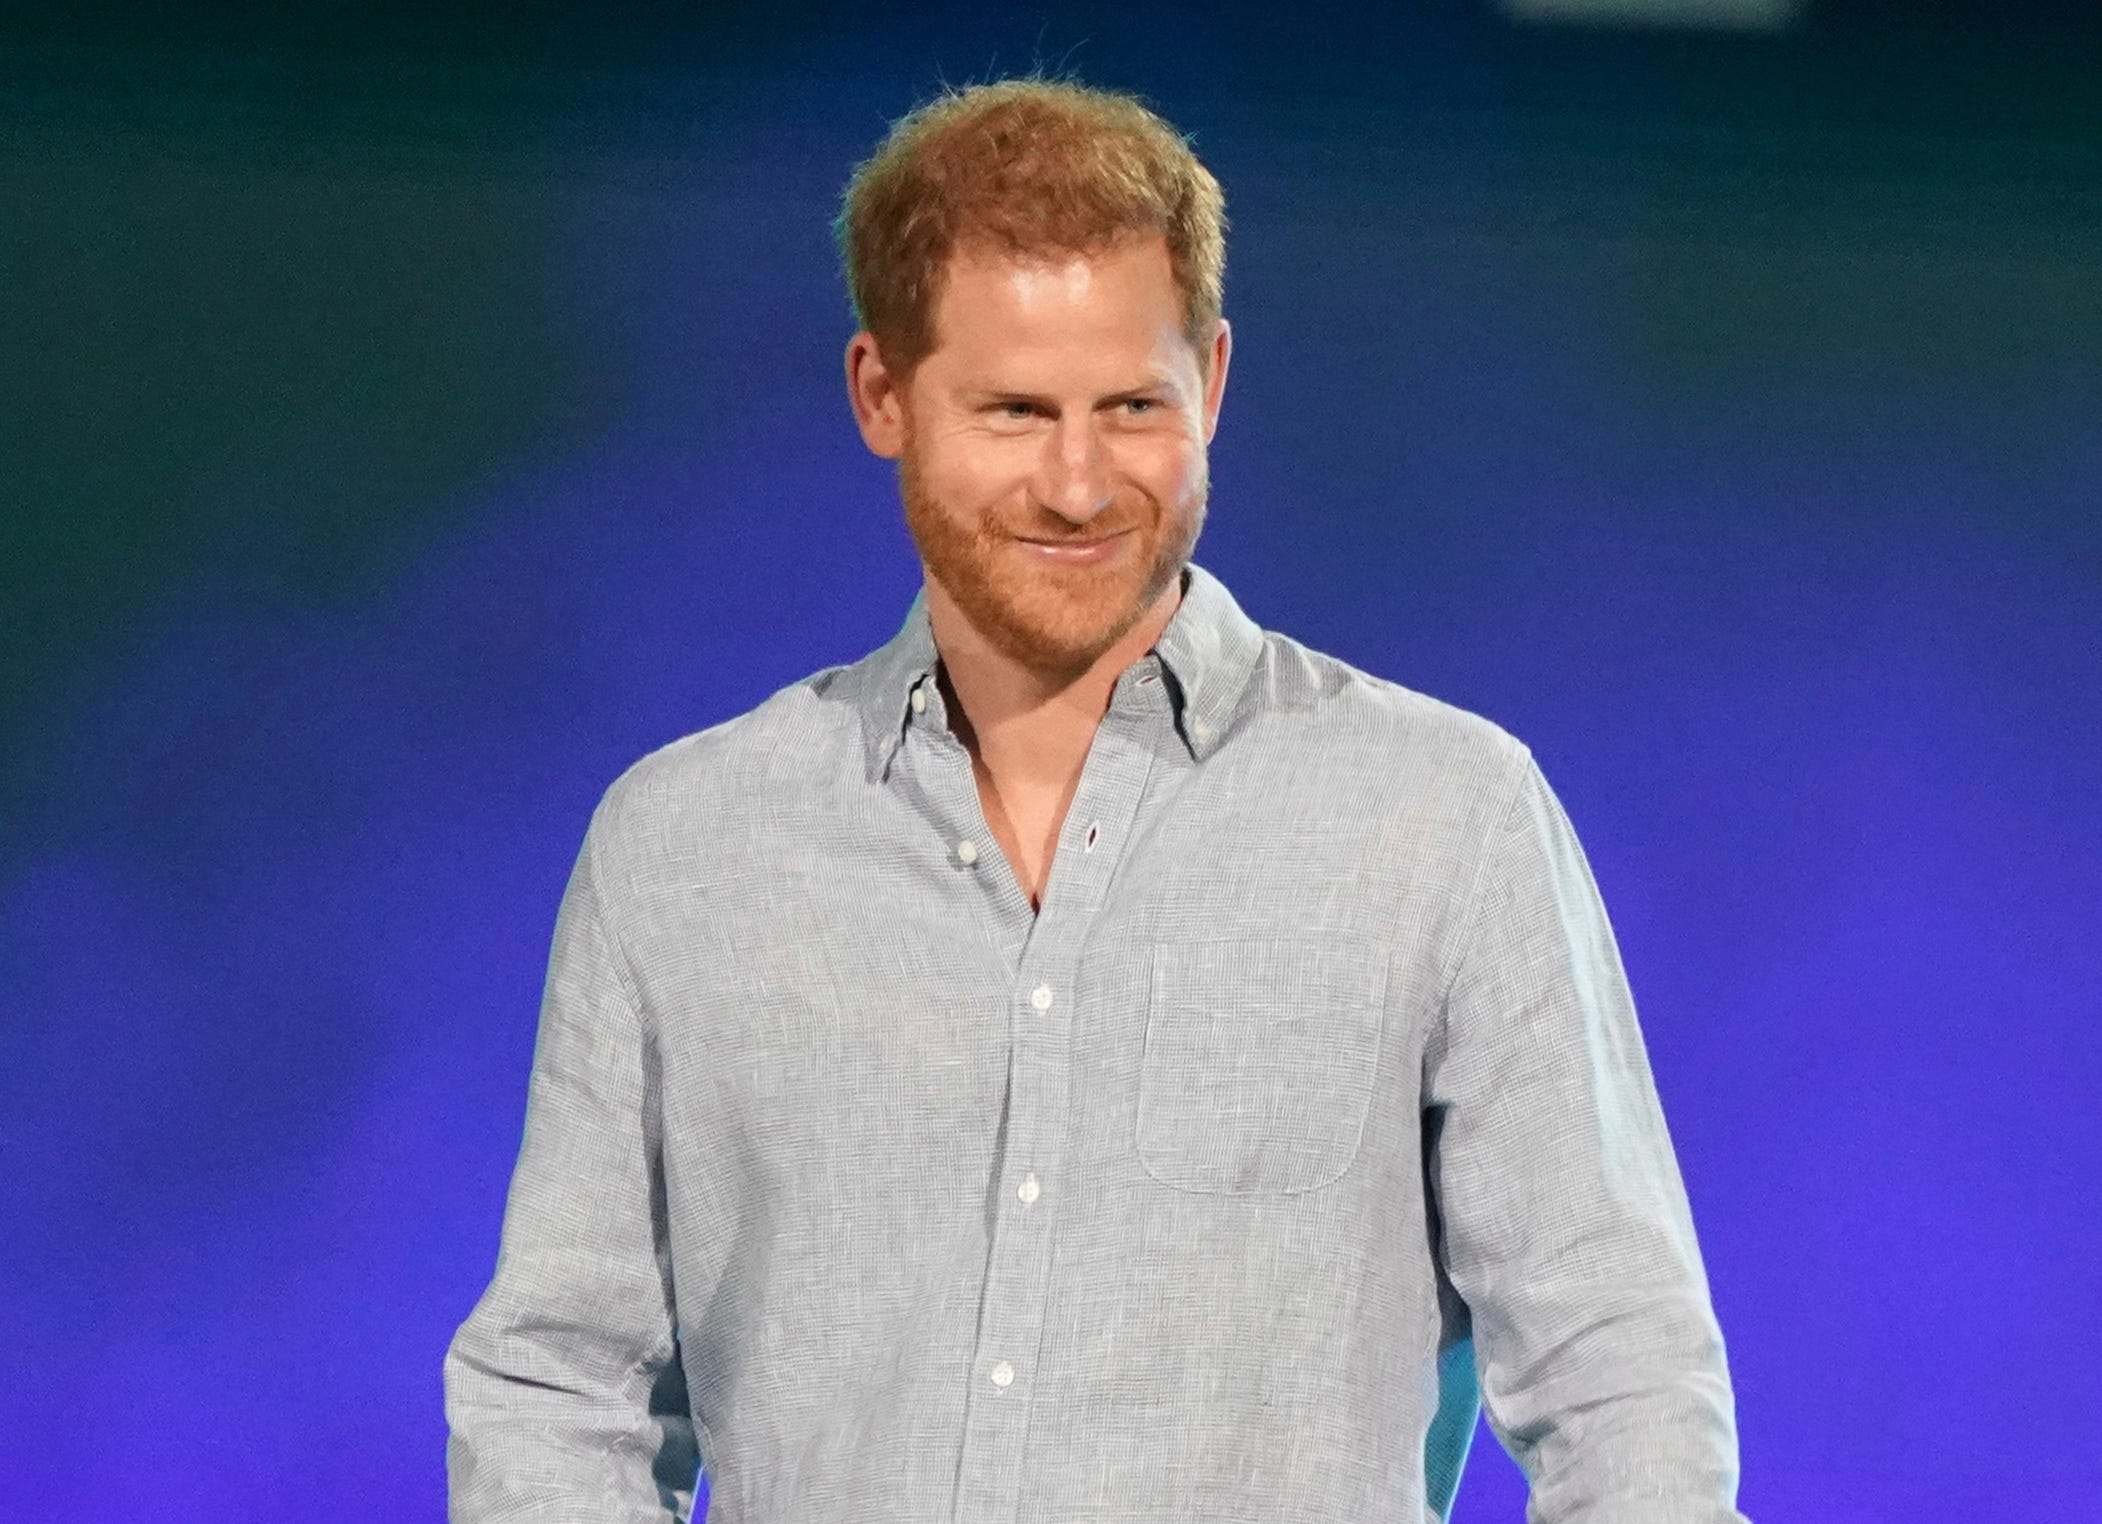 Prince Harry said he is triggered flying into London and uses EMDR to cope. What is it?